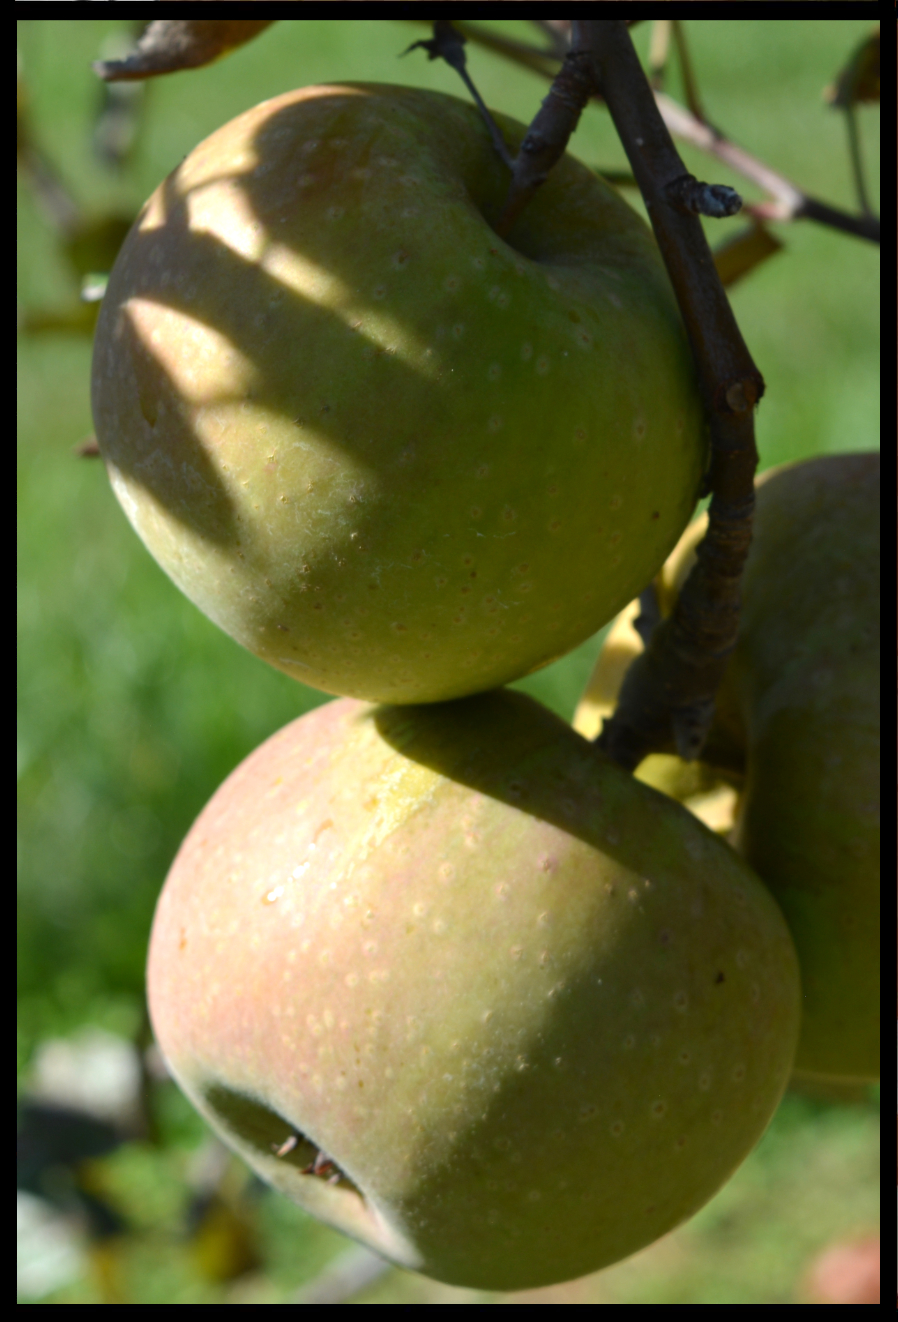 apple with dull green skin and a very slight pink blush